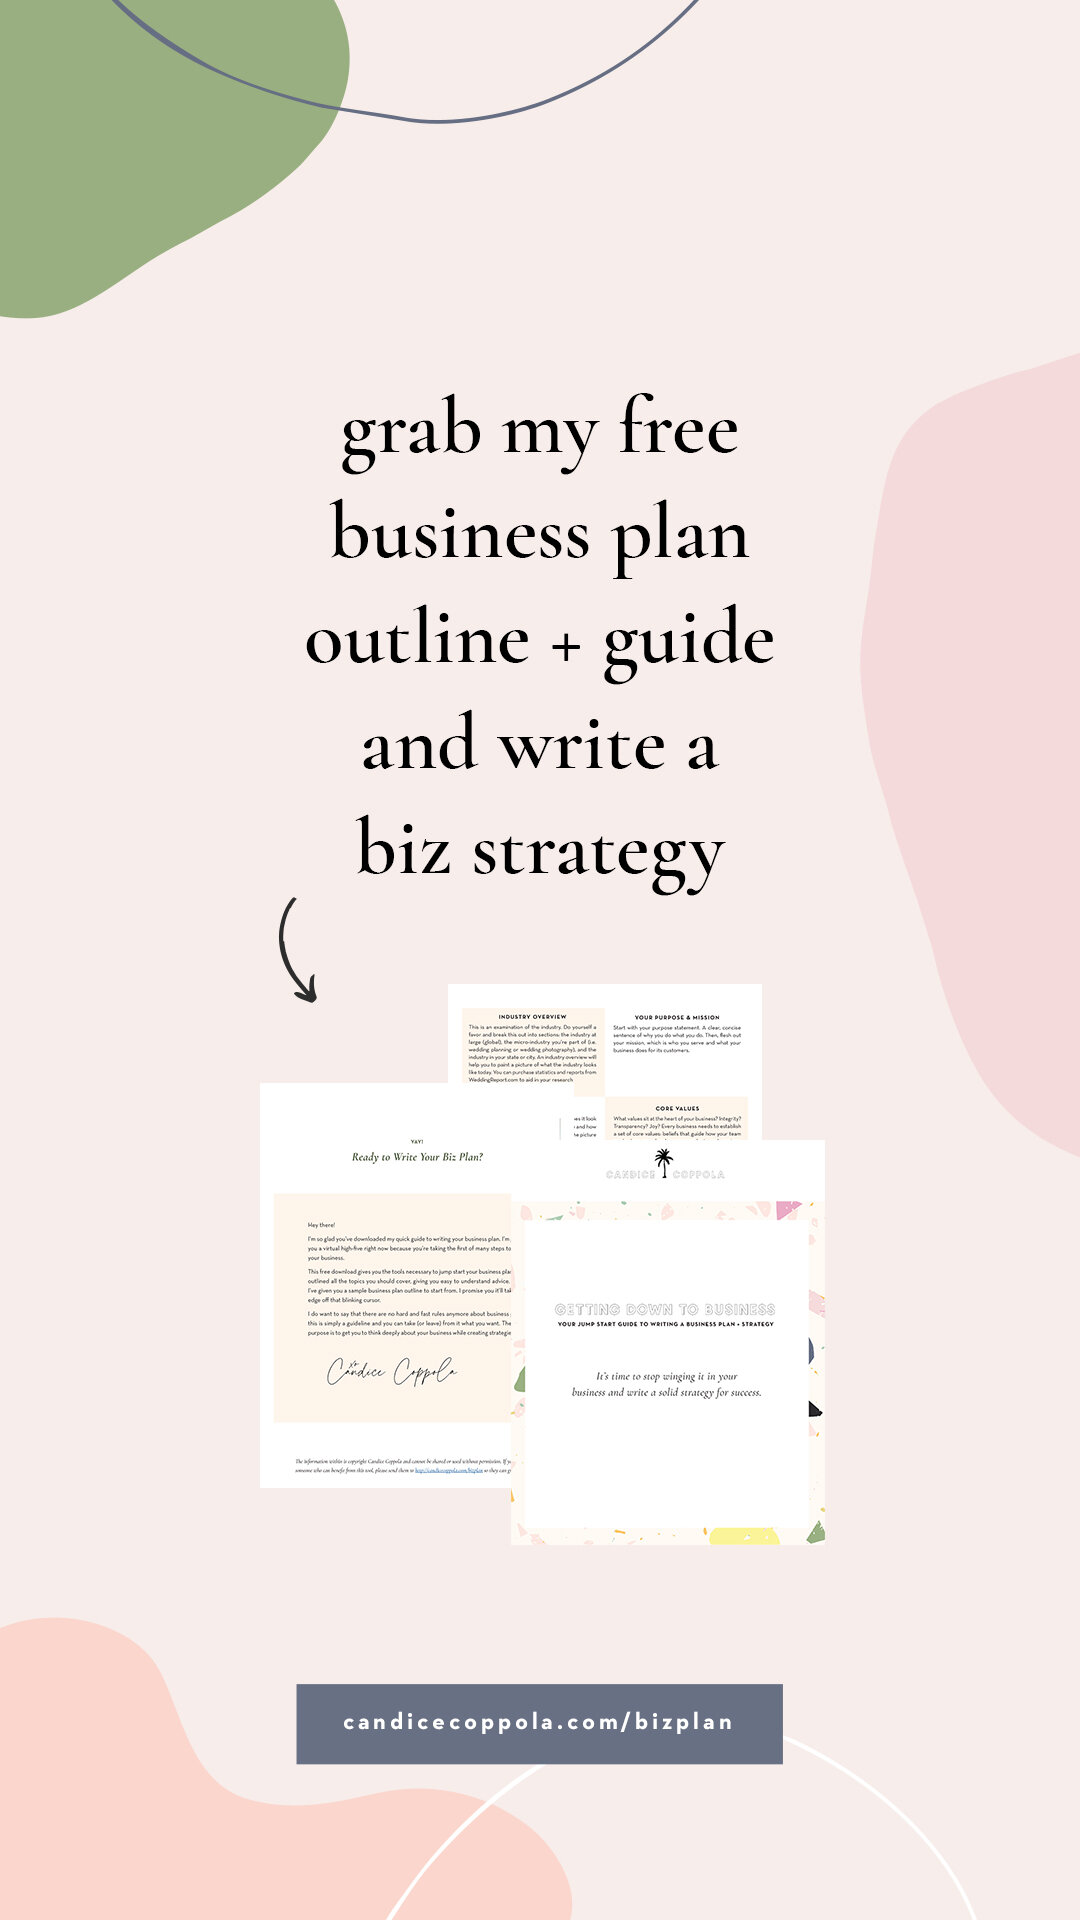 Struggling to write your business plan? Wish you had a free outline to help you get started? If you are a business owner in the wedding industry, this free business plan template will help kick-start strategies in your business. This template has been specially created for wedding pros like you! So if you're a wedding planner, wedding photographer, wedding cake designer, wedding invitation designer, wedding caterer, or any style of wedding business owner, be sure to download this free business plan template to start creating solid strategies that work in your business. #candicecoppola #businessplan #bizplan #weddingpros